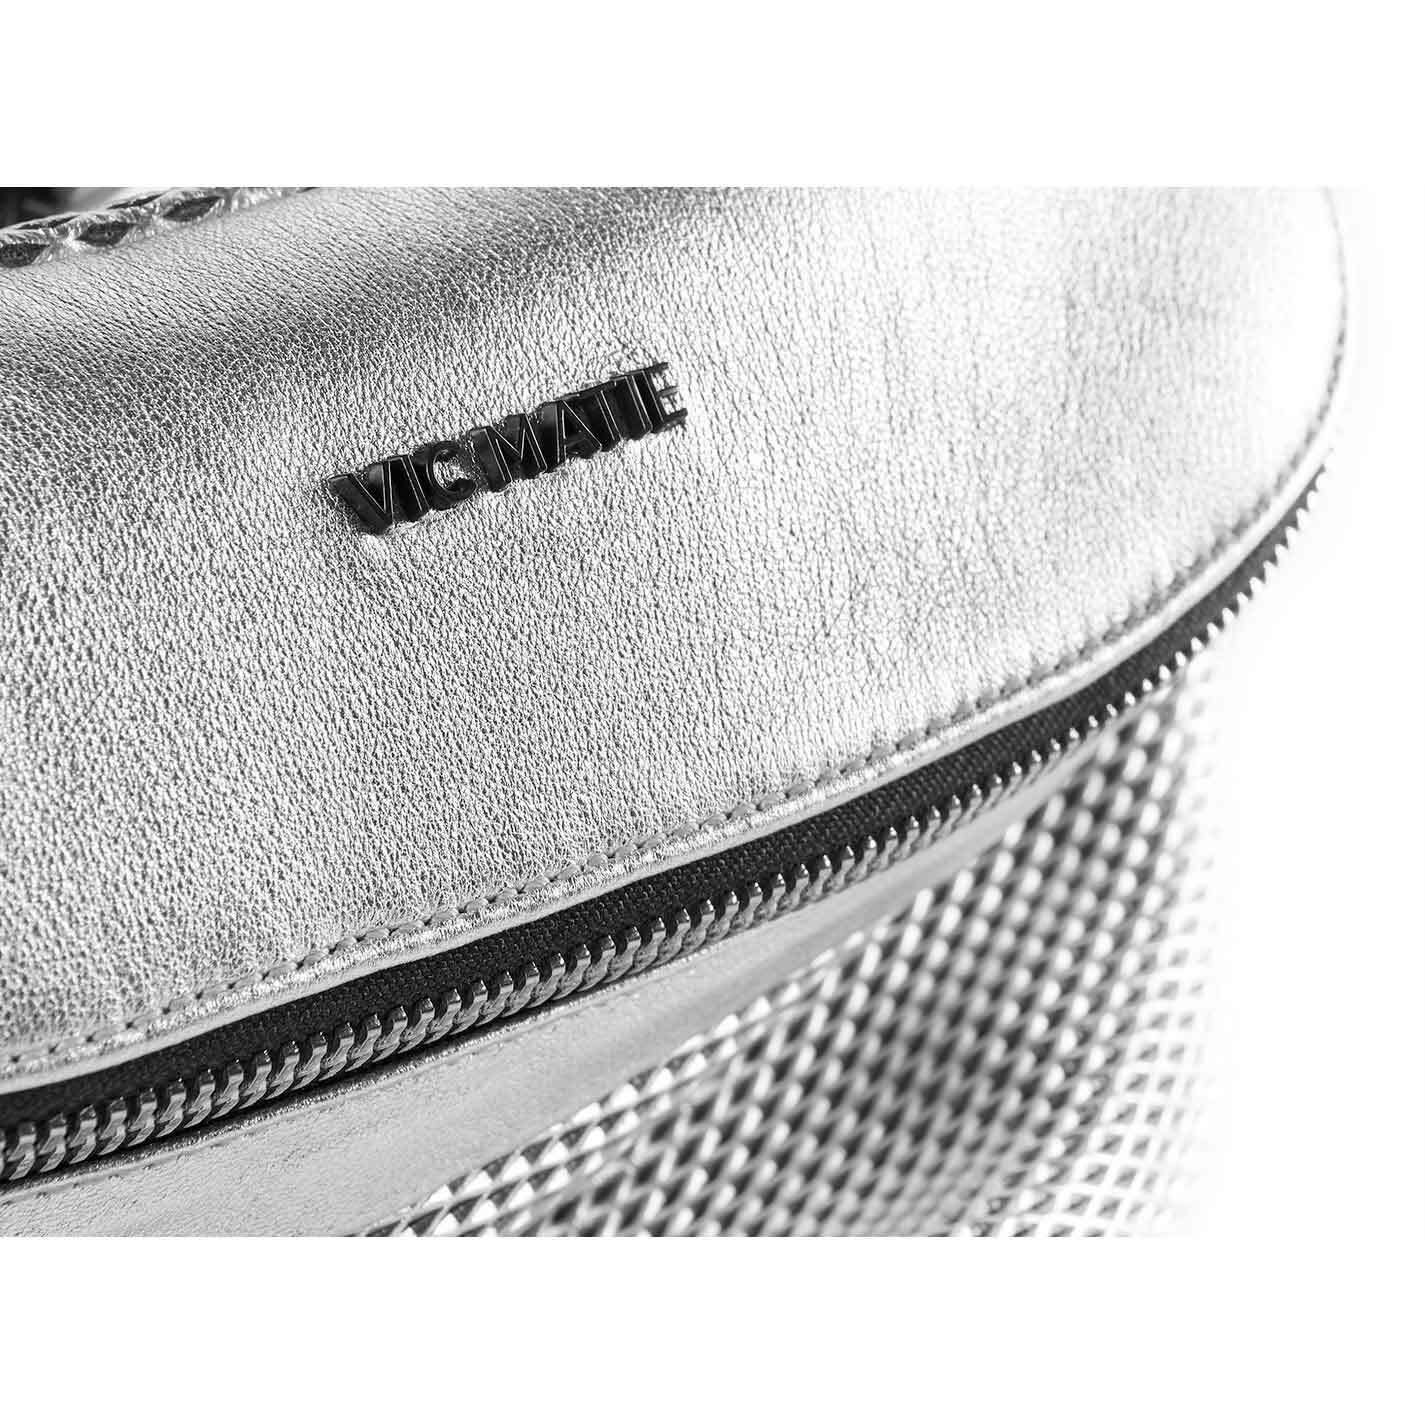 Ginger<br />Perforated silver leather waist bag